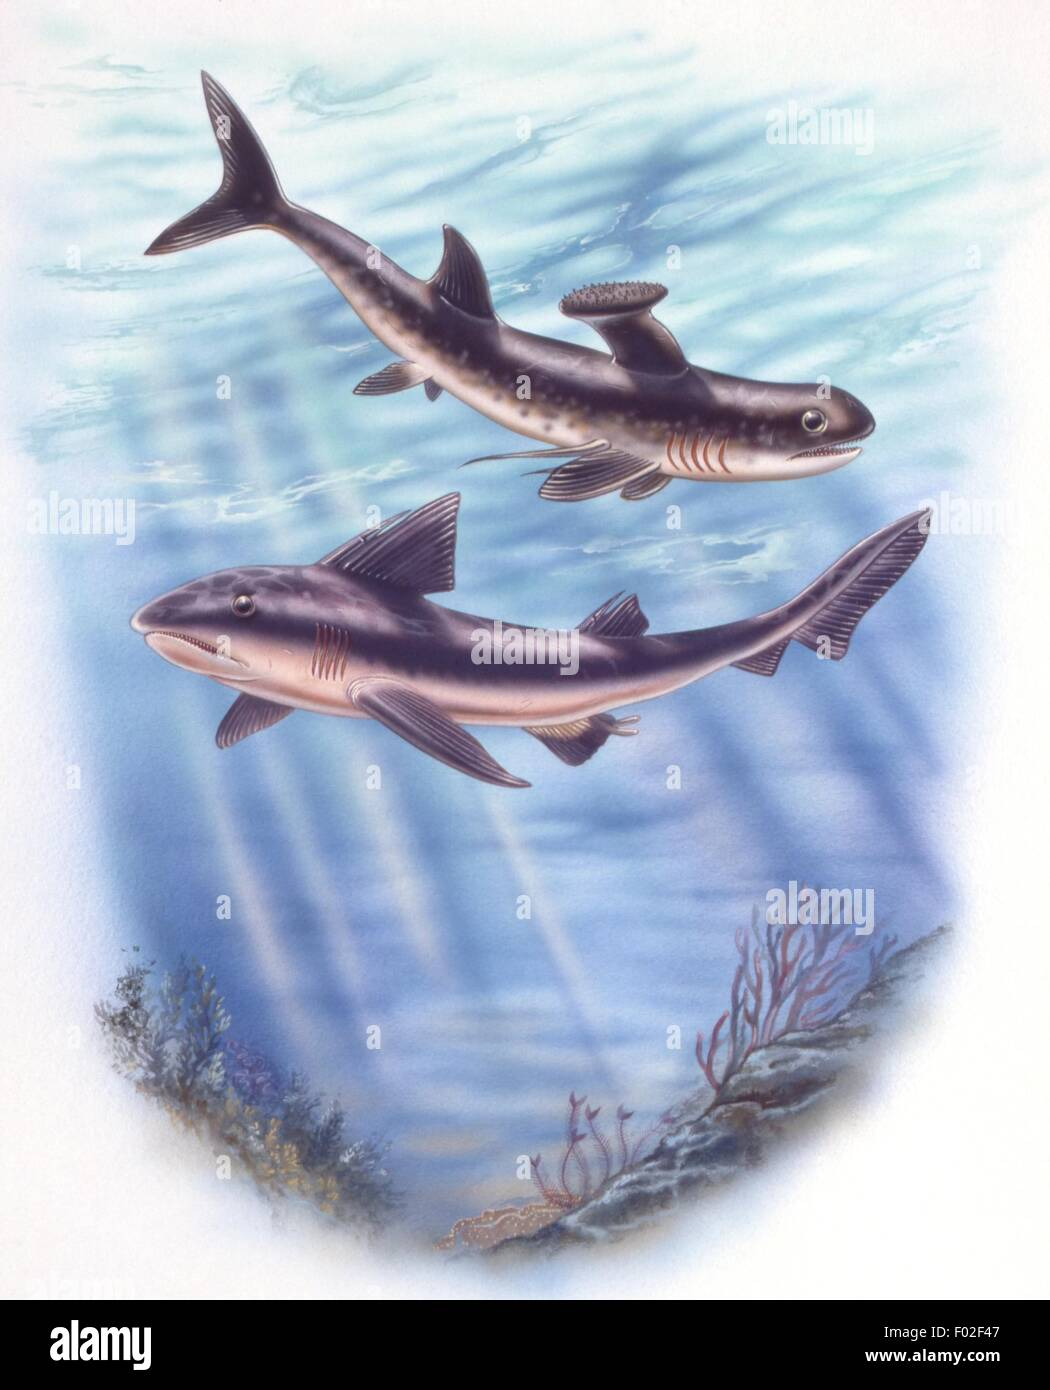 Palaeozoology - Devoniana/Carboniferous period - Fossil fishes - Stethacanthus and Hyobus - Art work by Robin Carter Stock Photo